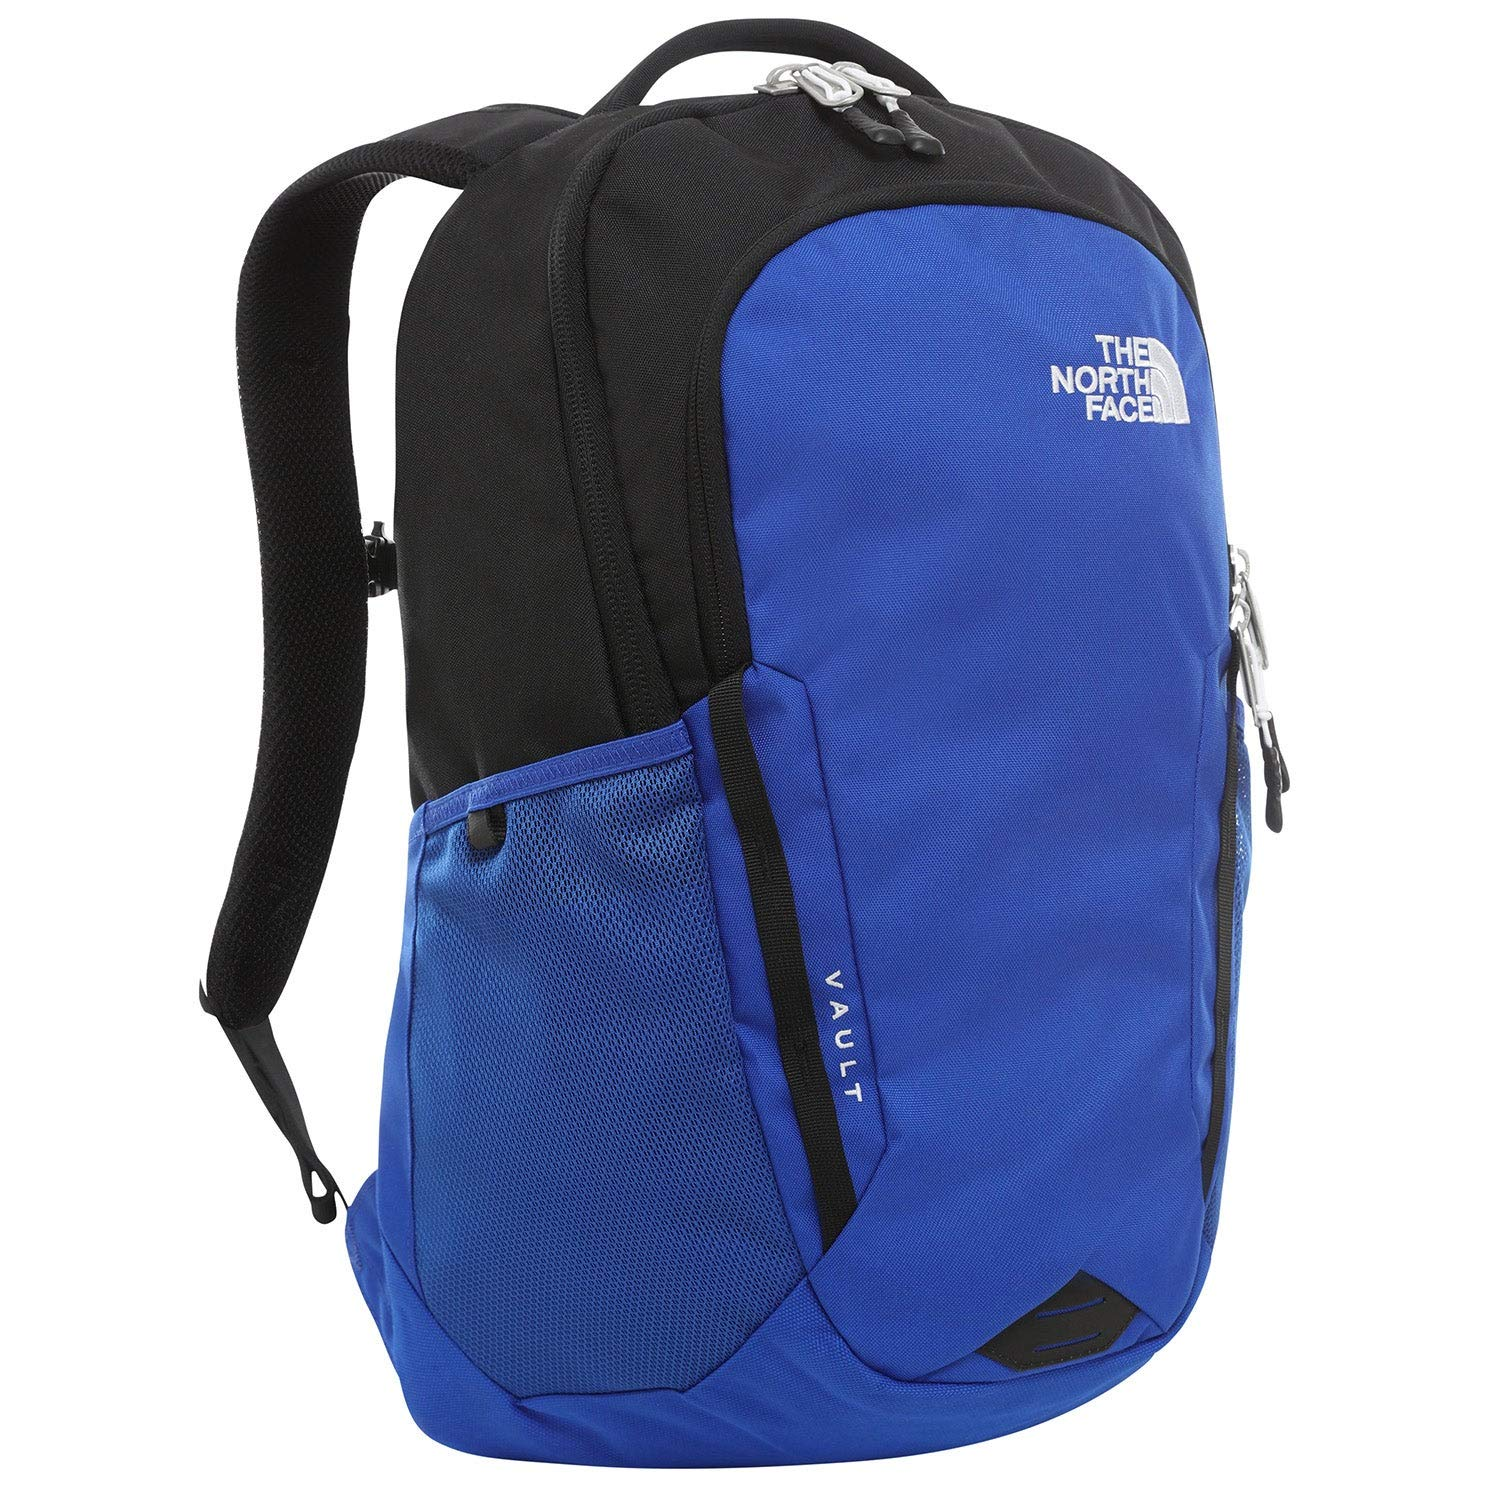 The North Face Vault, TNF Blue/TNF Black, OS by The North Face